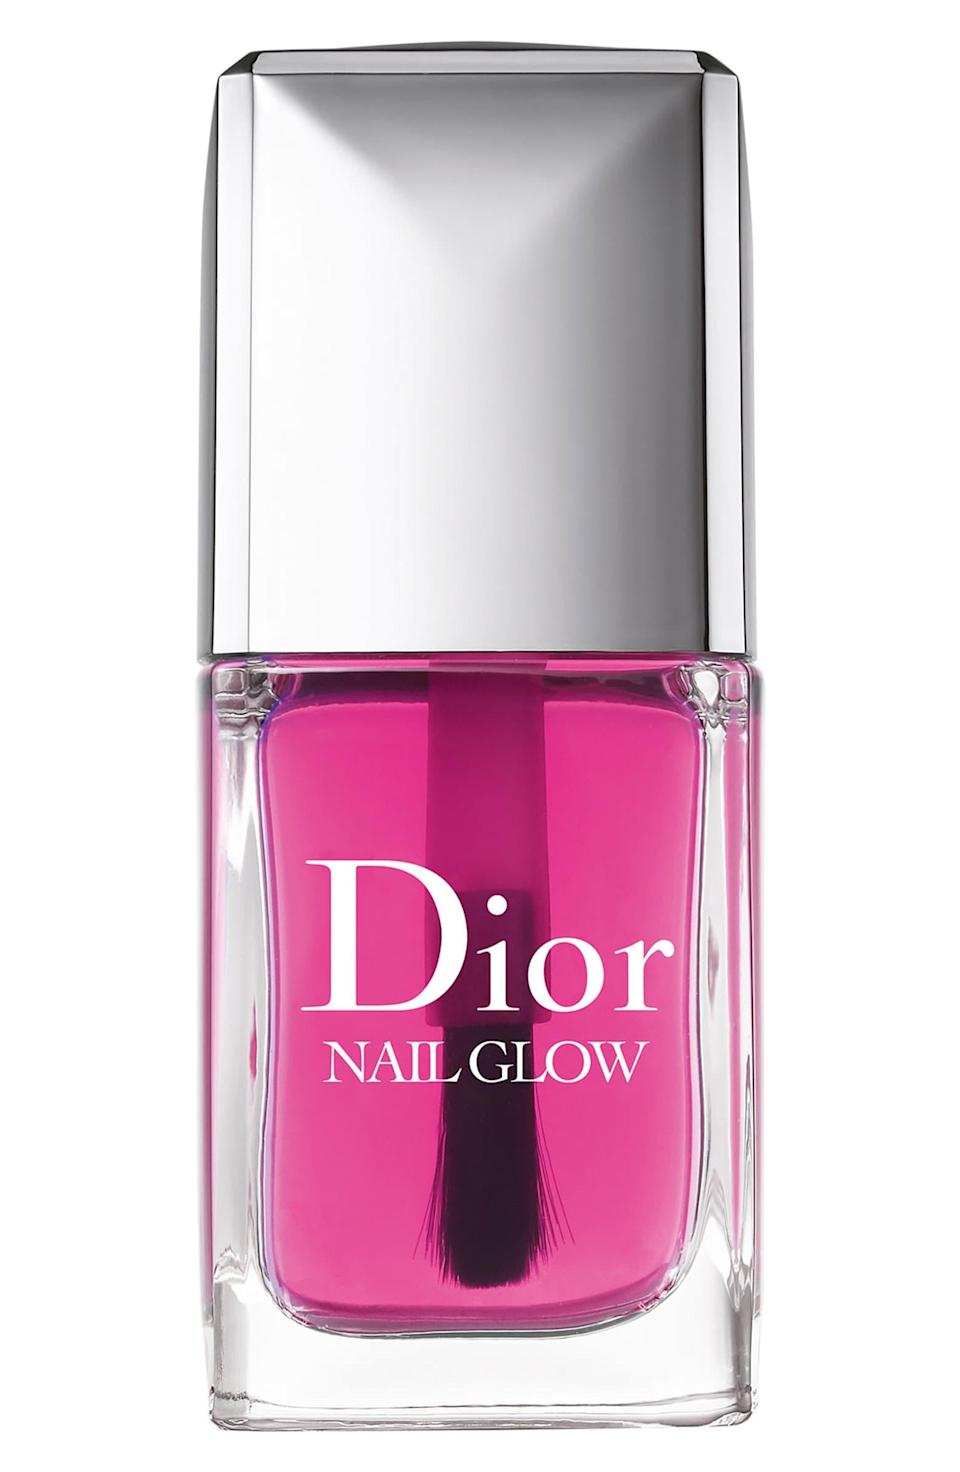 """<h3>Dior Nail Glow Nail Enhancer<br></h3><br>Think of this sheer pink Dior polish like a <a href=""""https://www.refinery29.com/en-us/2018/01/185962/dior-addict-lip-glow-balm-review"""" rel=""""nofollow noopener"""" target=""""_blank"""" data-ylk=""""slk:Lip Glow"""" class=""""link rapid-noclick-resp"""">Lip Glow</a> for your fingernails. Brush a light coat on bare nails, and watch as your pinks go pinker and whites go whiter for a your-nails-but-better effect.<br><br><strong>Dior</strong> Nail Glow Nail Enhancer, $, available at <a href=""""https://go.skimresources.com/?id=30283X879131&url=https%3A%2F%2Fshop.nordstrom.com%2Fs%2Fdior-nail-glow-nail-enhancer%2F3478311"""" rel=""""nofollow noopener"""" target=""""_blank"""" data-ylk=""""slk:Nordstrom"""" class=""""link rapid-noclick-resp"""">Nordstrom</a>"""